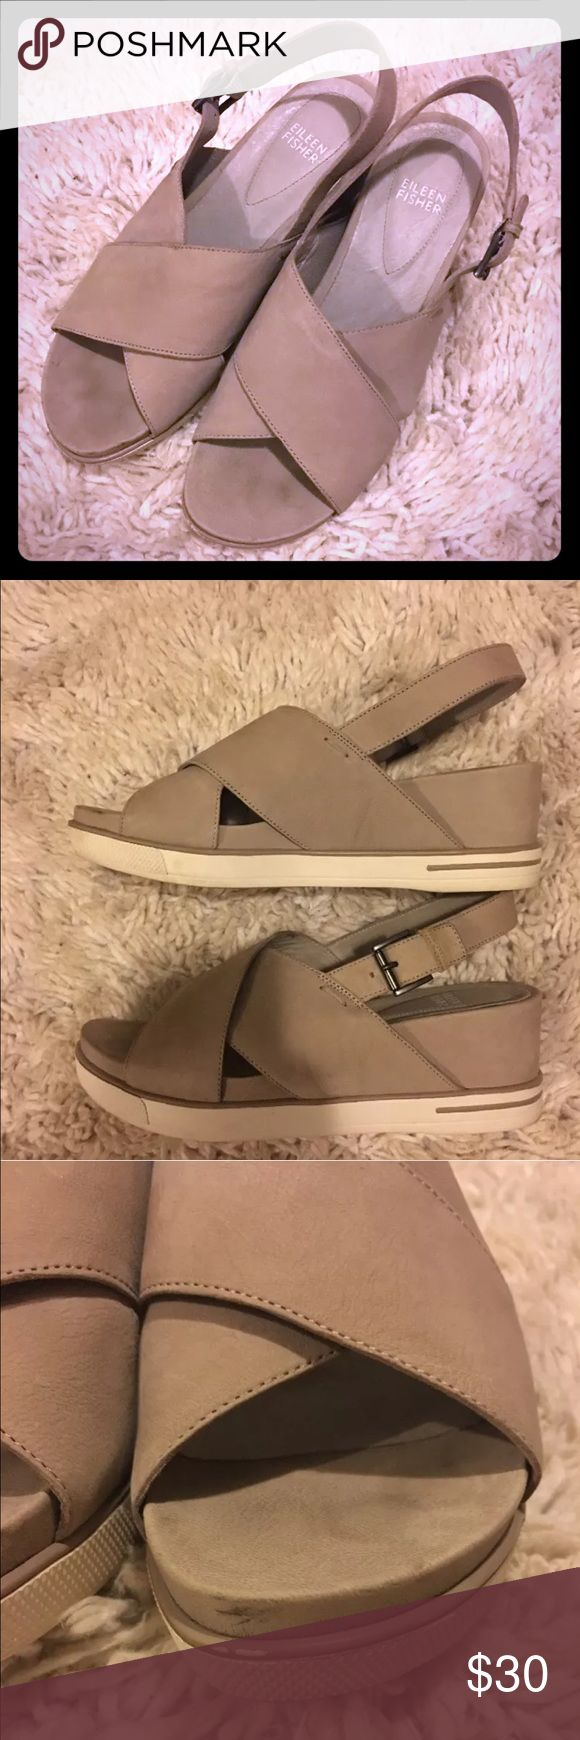 Eileen Fisher sandals Eileen Fisher cream Sandal size 8 flaw shown in 3rd pic other wise hardly worn Eileen Fisher Shoes Sandals